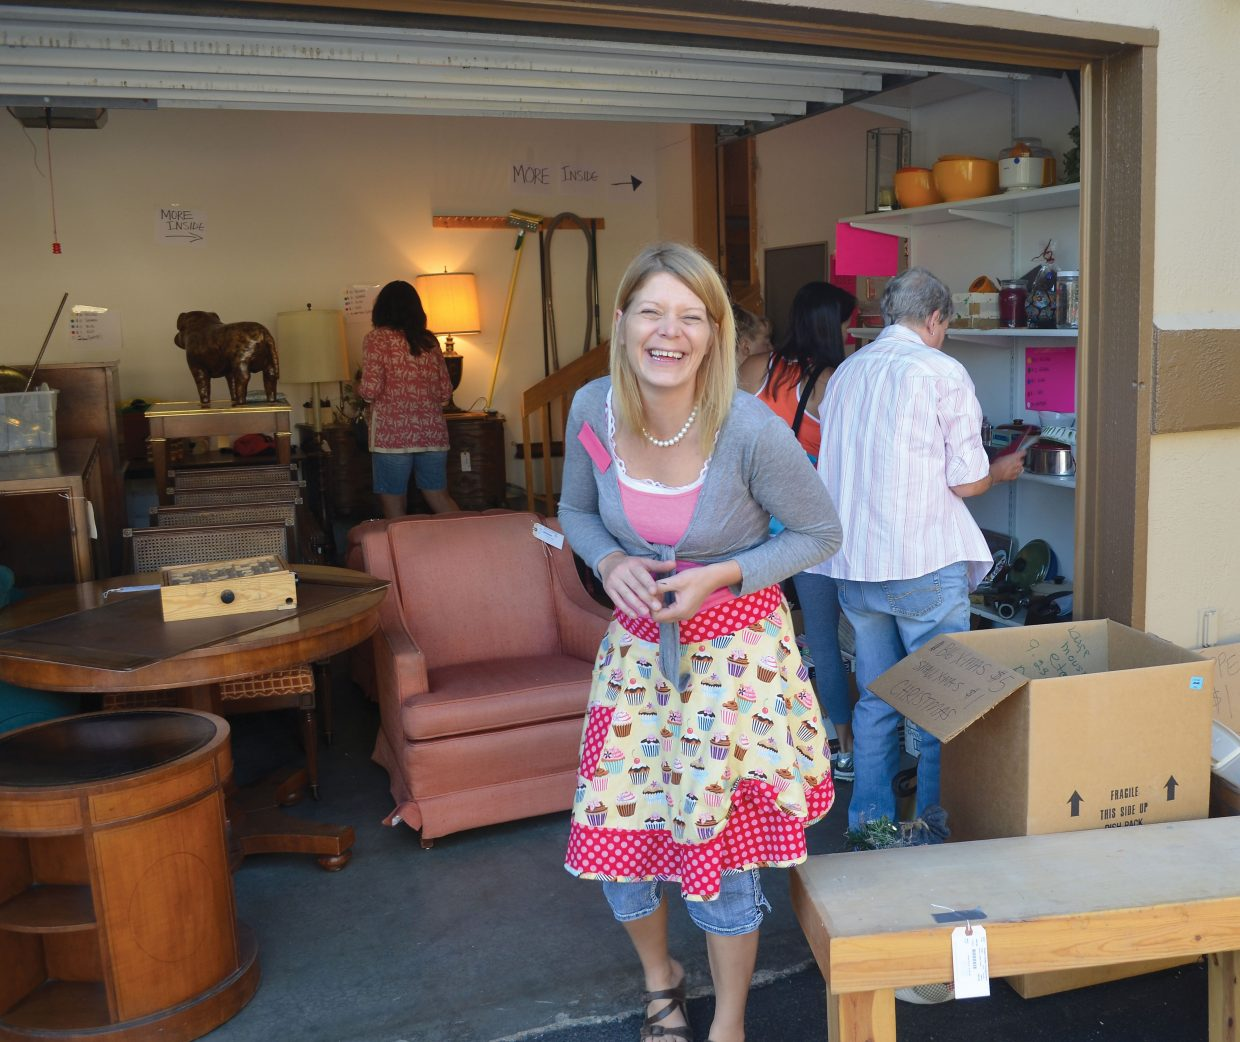 Jackie Andrews, of Annie's Home Consignment, keeps it fun with a 1950s-style kitchen apron during an estate sale Friday in a townhome near the ski mountain in Steamboat Springs.